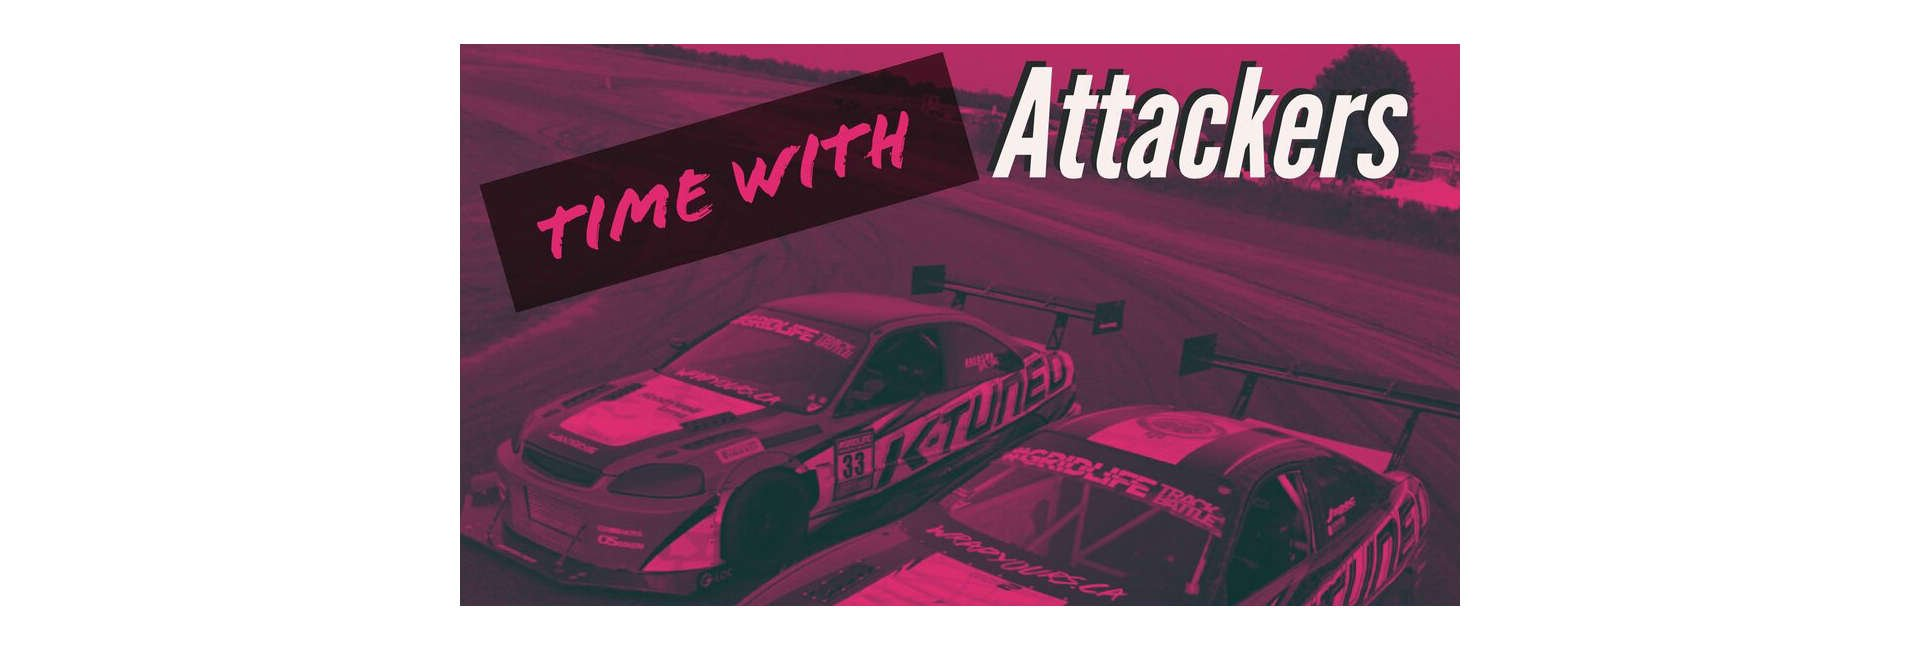 04_Time With Attackers Podcast